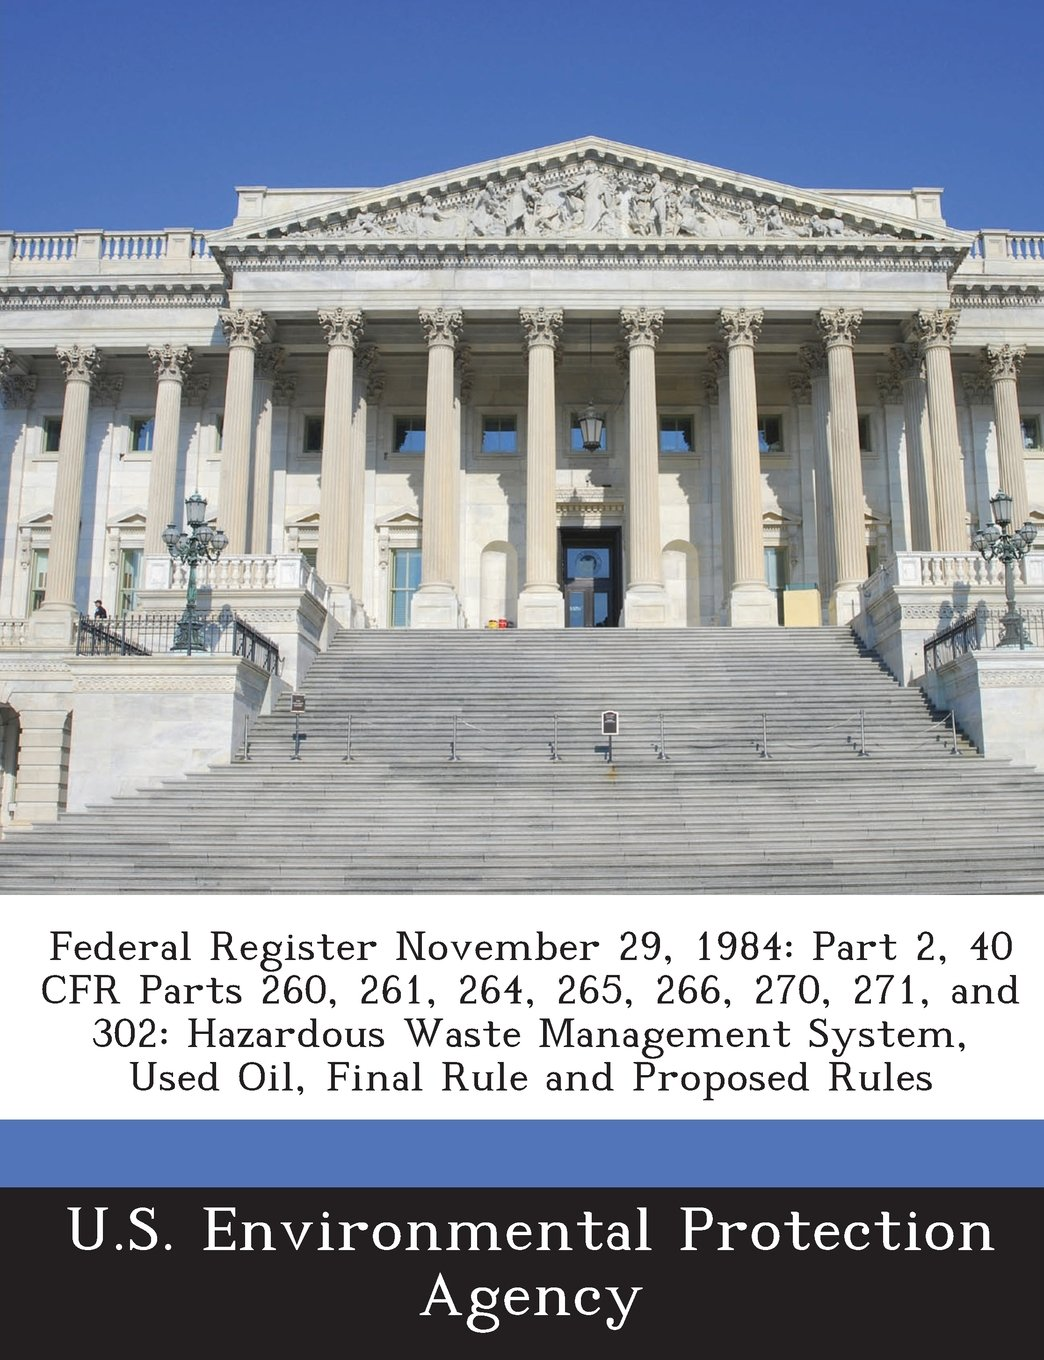 Download Federal Register November 29, 1984: Part 2, 40 CFR Parts 260, 261, 264, 265, 266, 270, 271, and 302: Hazardous Waste Management System, Used Oil, Final Rule and Proposed Rules pdf epub